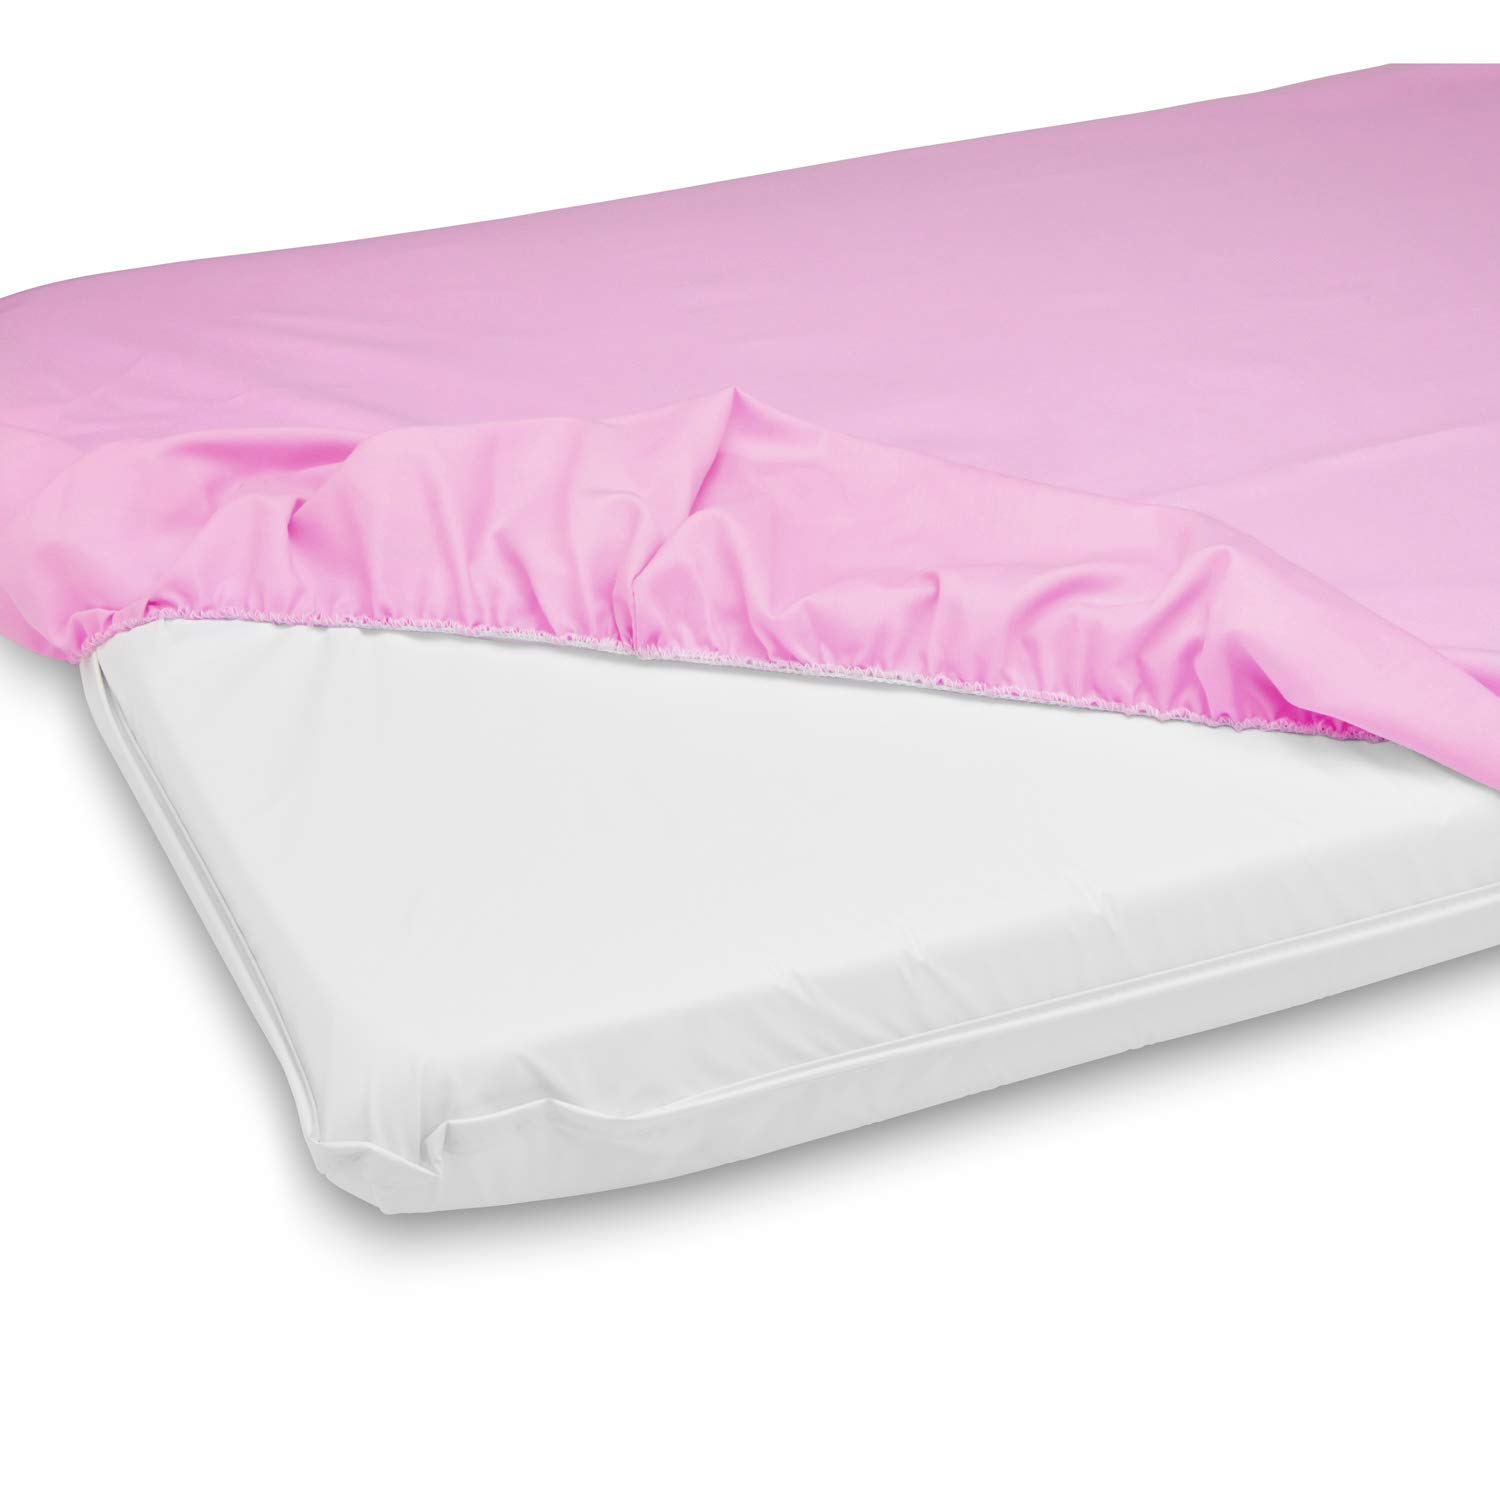 Cradle Mattress and Sheet Combo- Color: Lavender, Size: 18x36